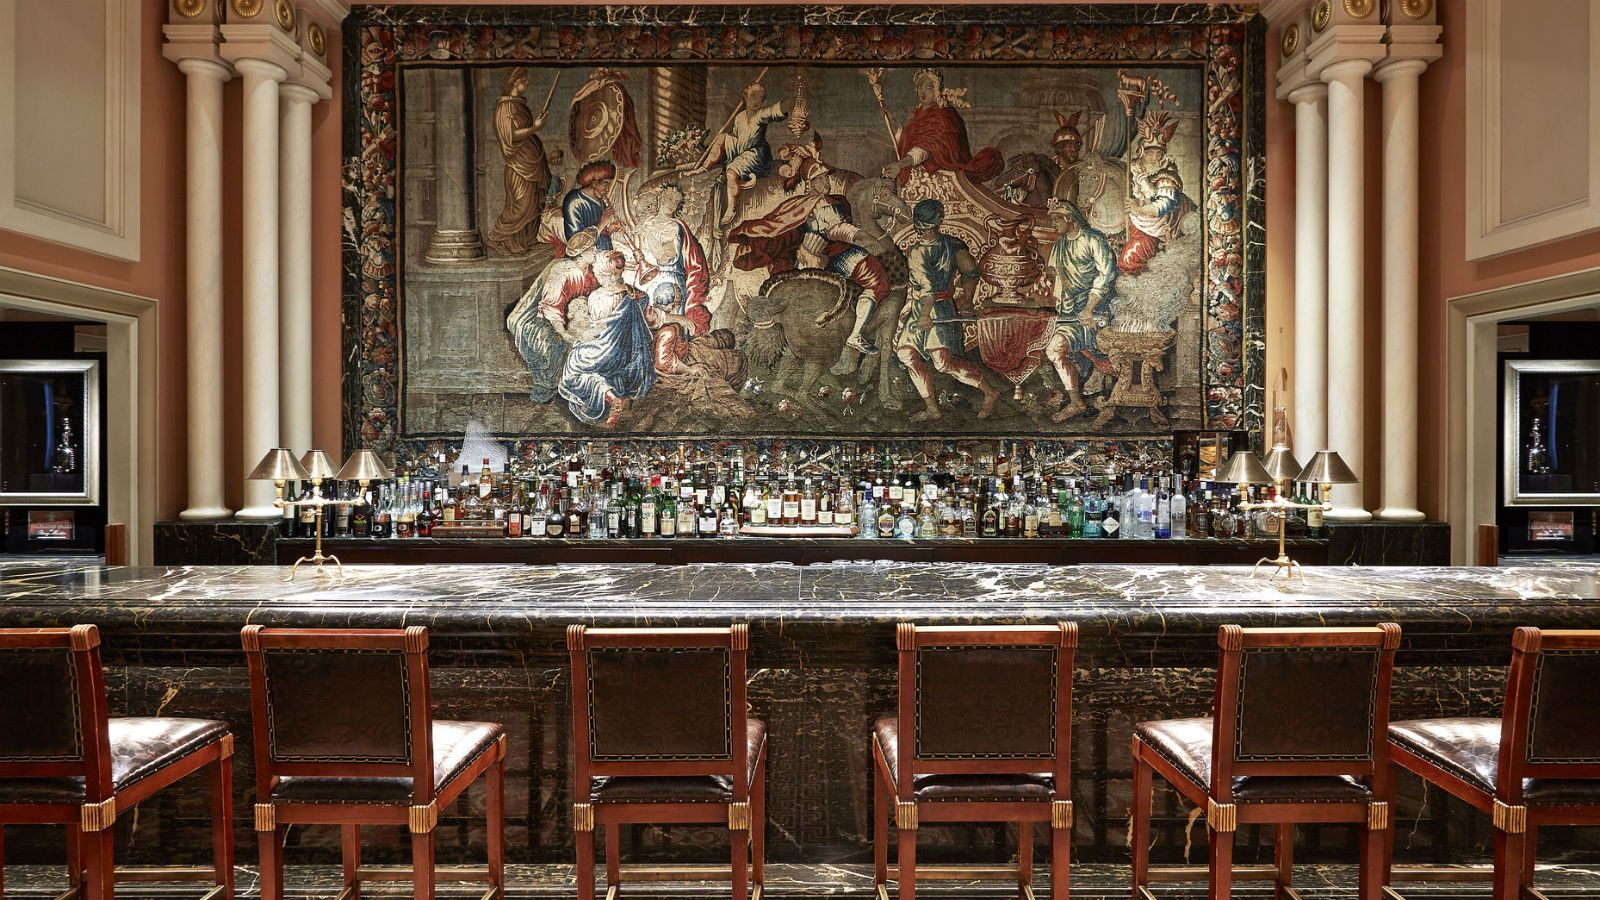 Hotel Grande Bretagne Athens  Alexander's Bar highlight is the 18th century tapestry of Alexander the Great